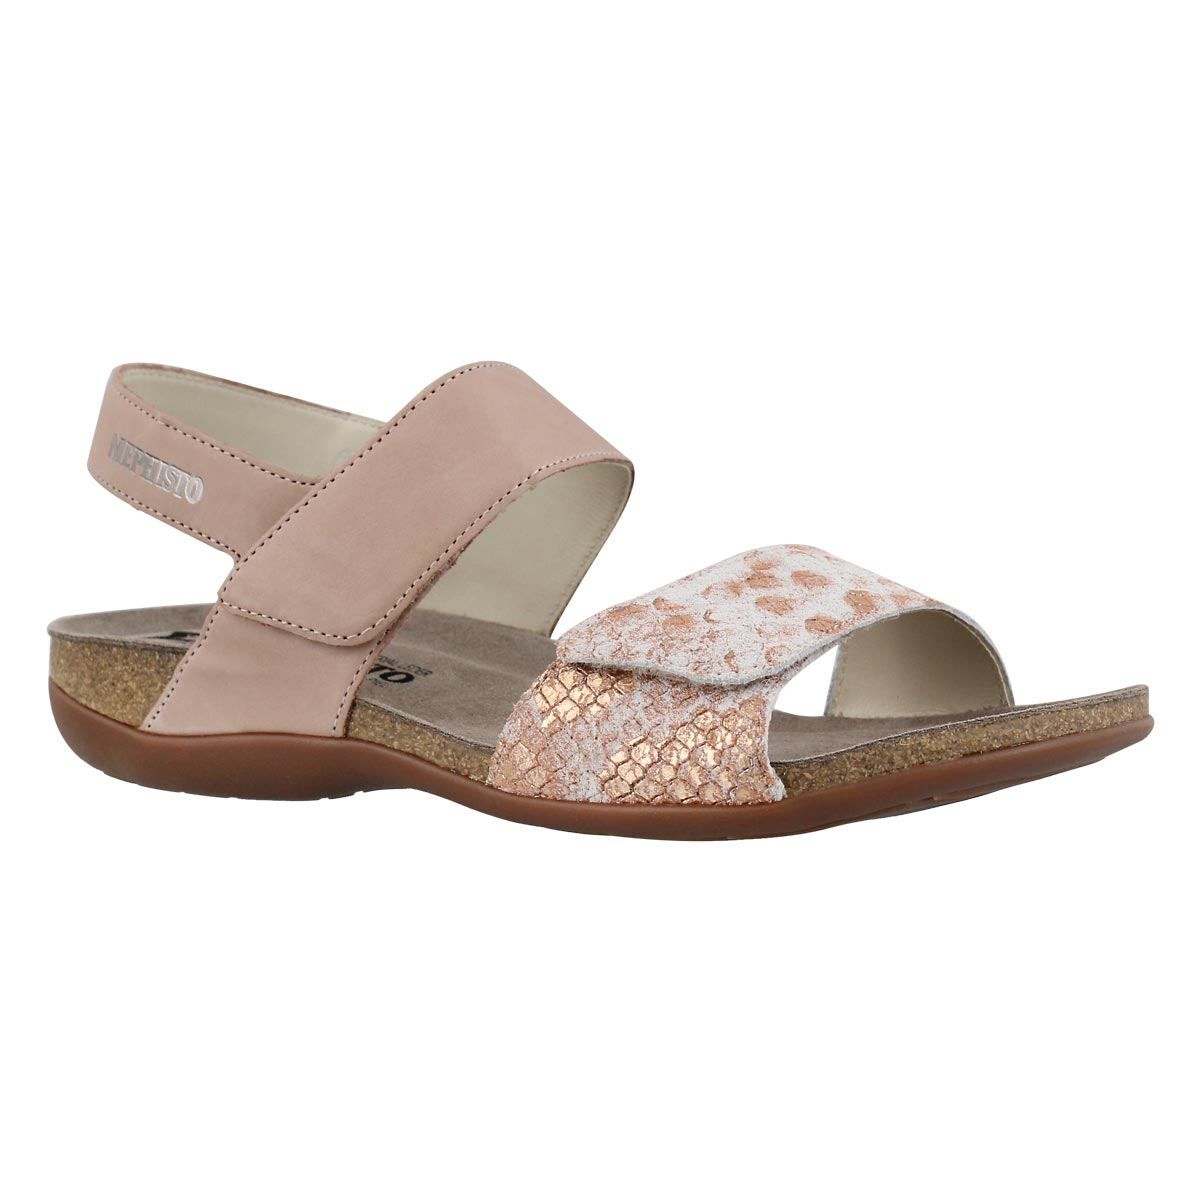 Women's AGAVE nude cork footbed sandals